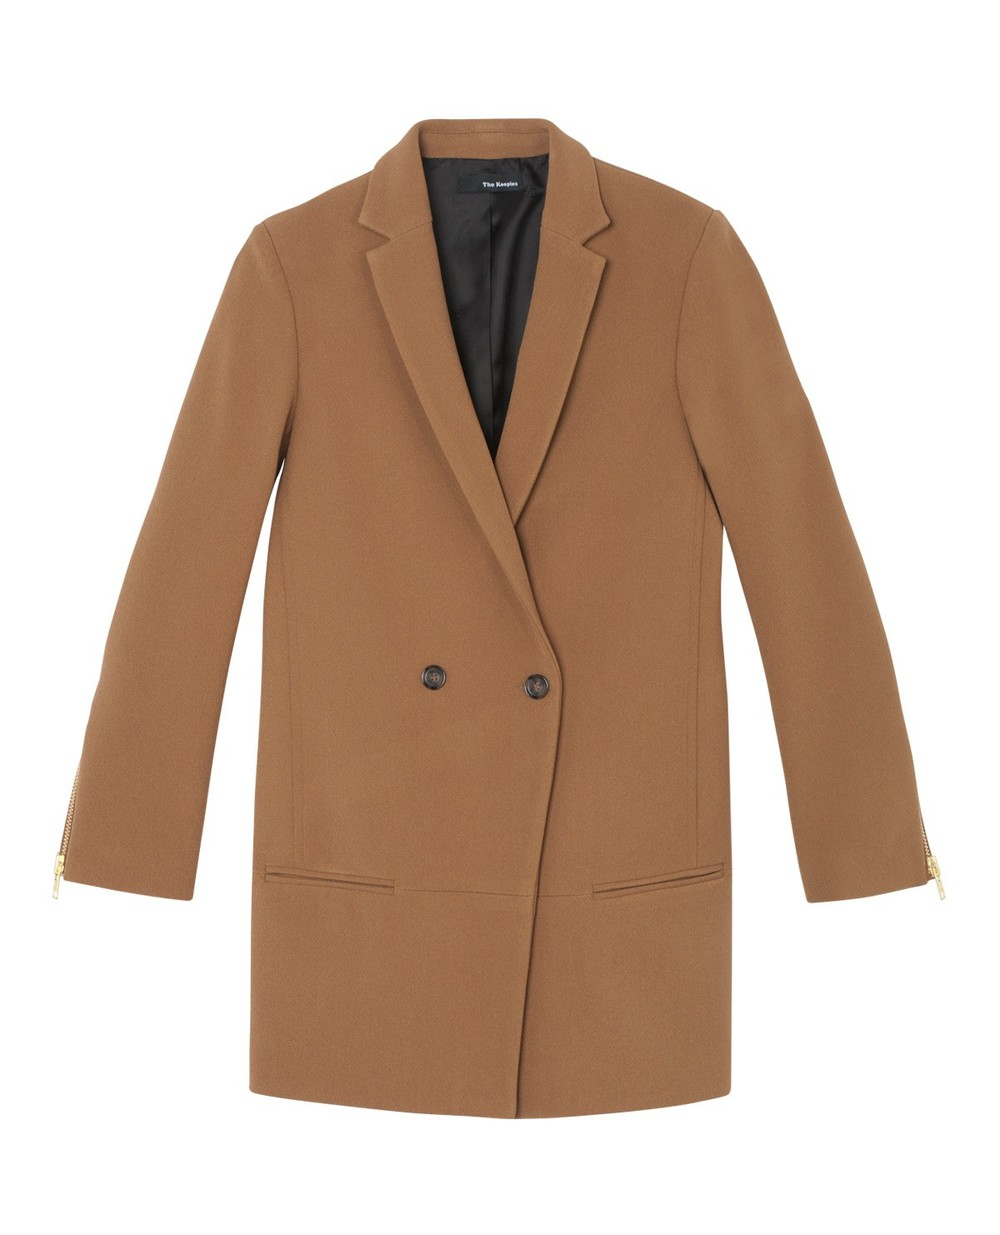 a camel coat from The Kooples